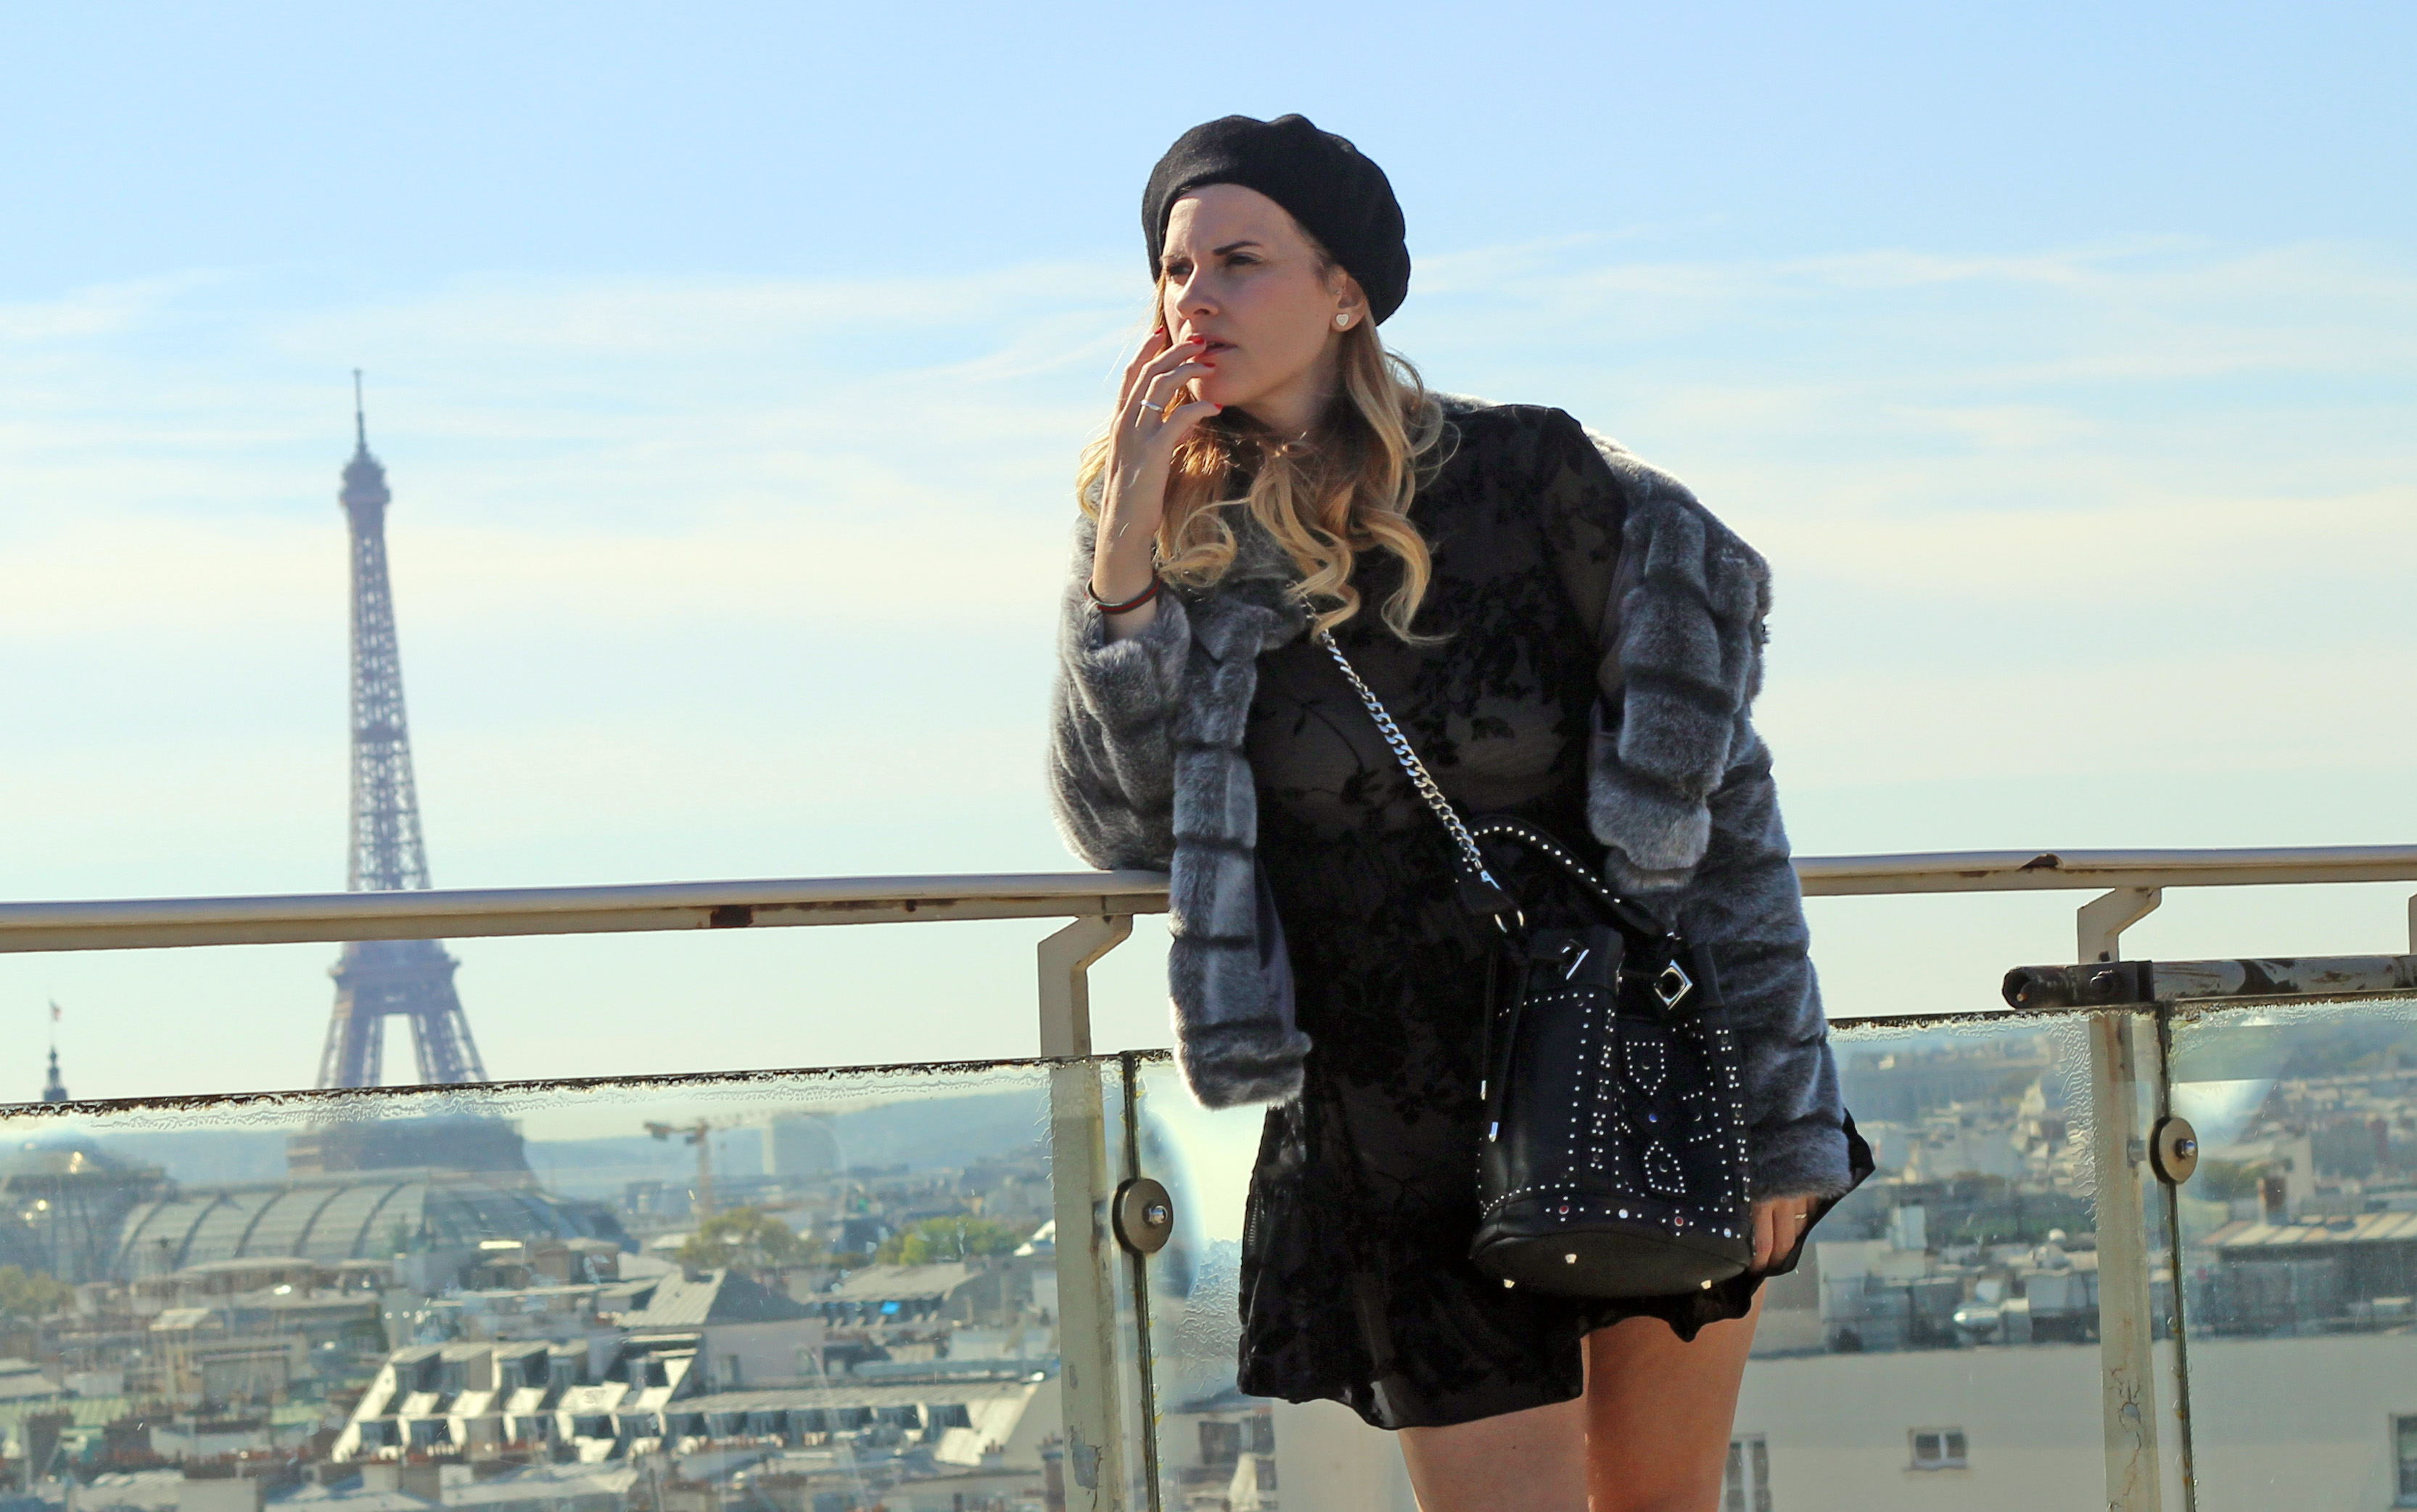 elisabetta_bertolini_fashion_blogger_parigi